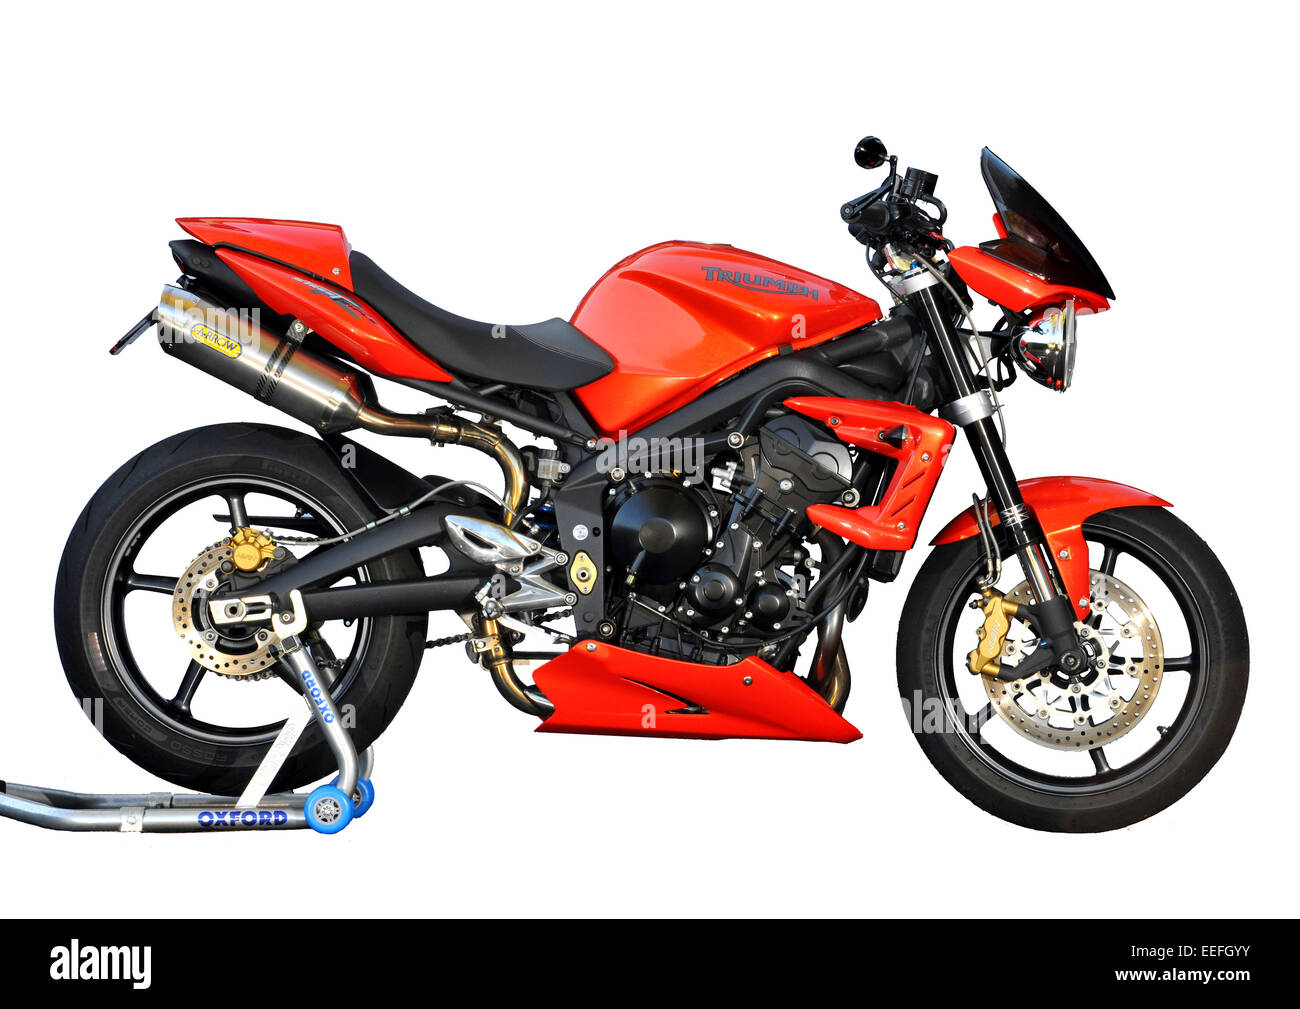 2011 triumph street triple 675 r motorcycle with arrow exhaust and stock photo royalty free. Black Bedroom Furniture Sets. Home Design Ideas